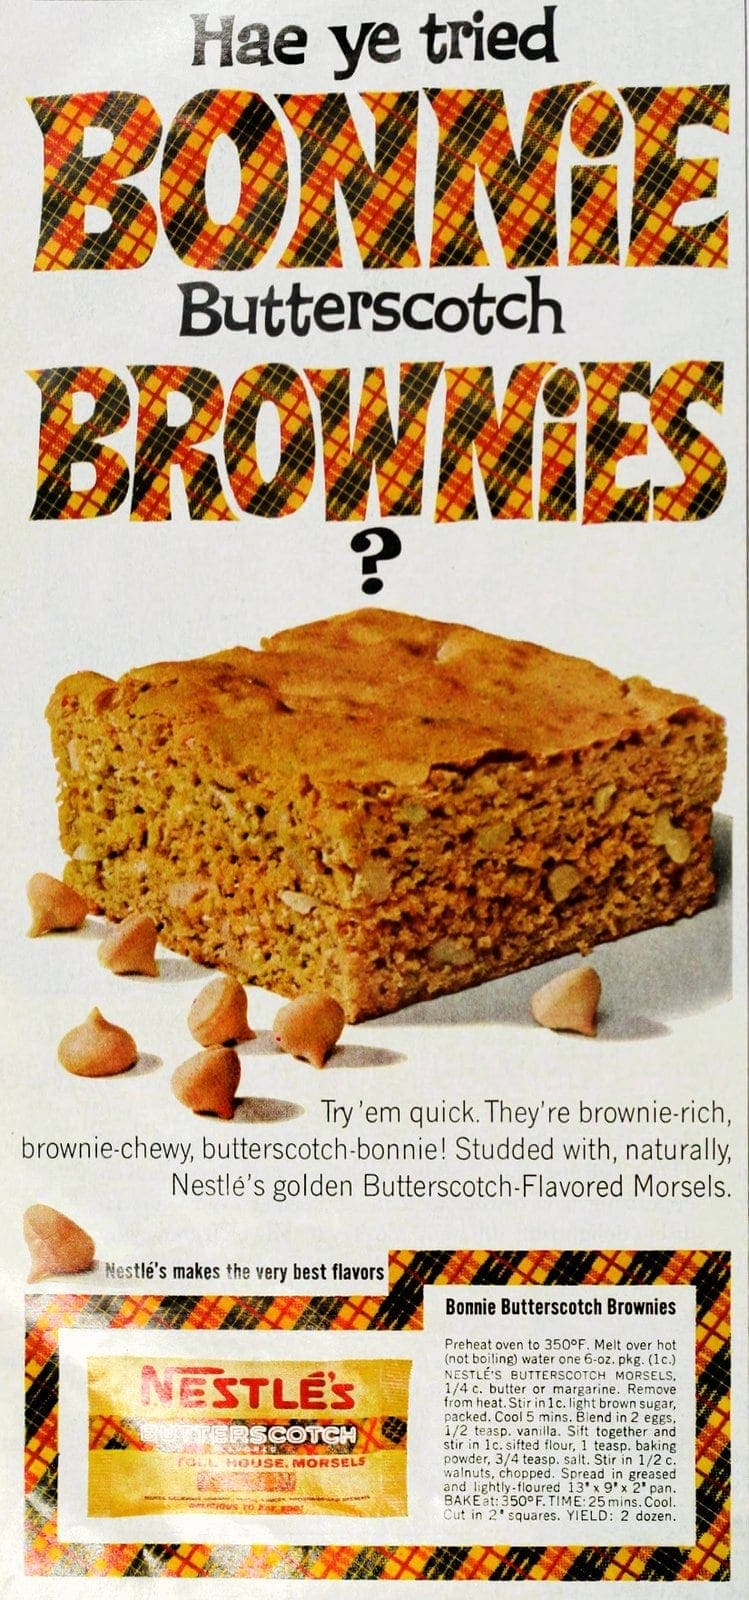 Vintage recipe - Bonnie butterscotch brownies (1964)